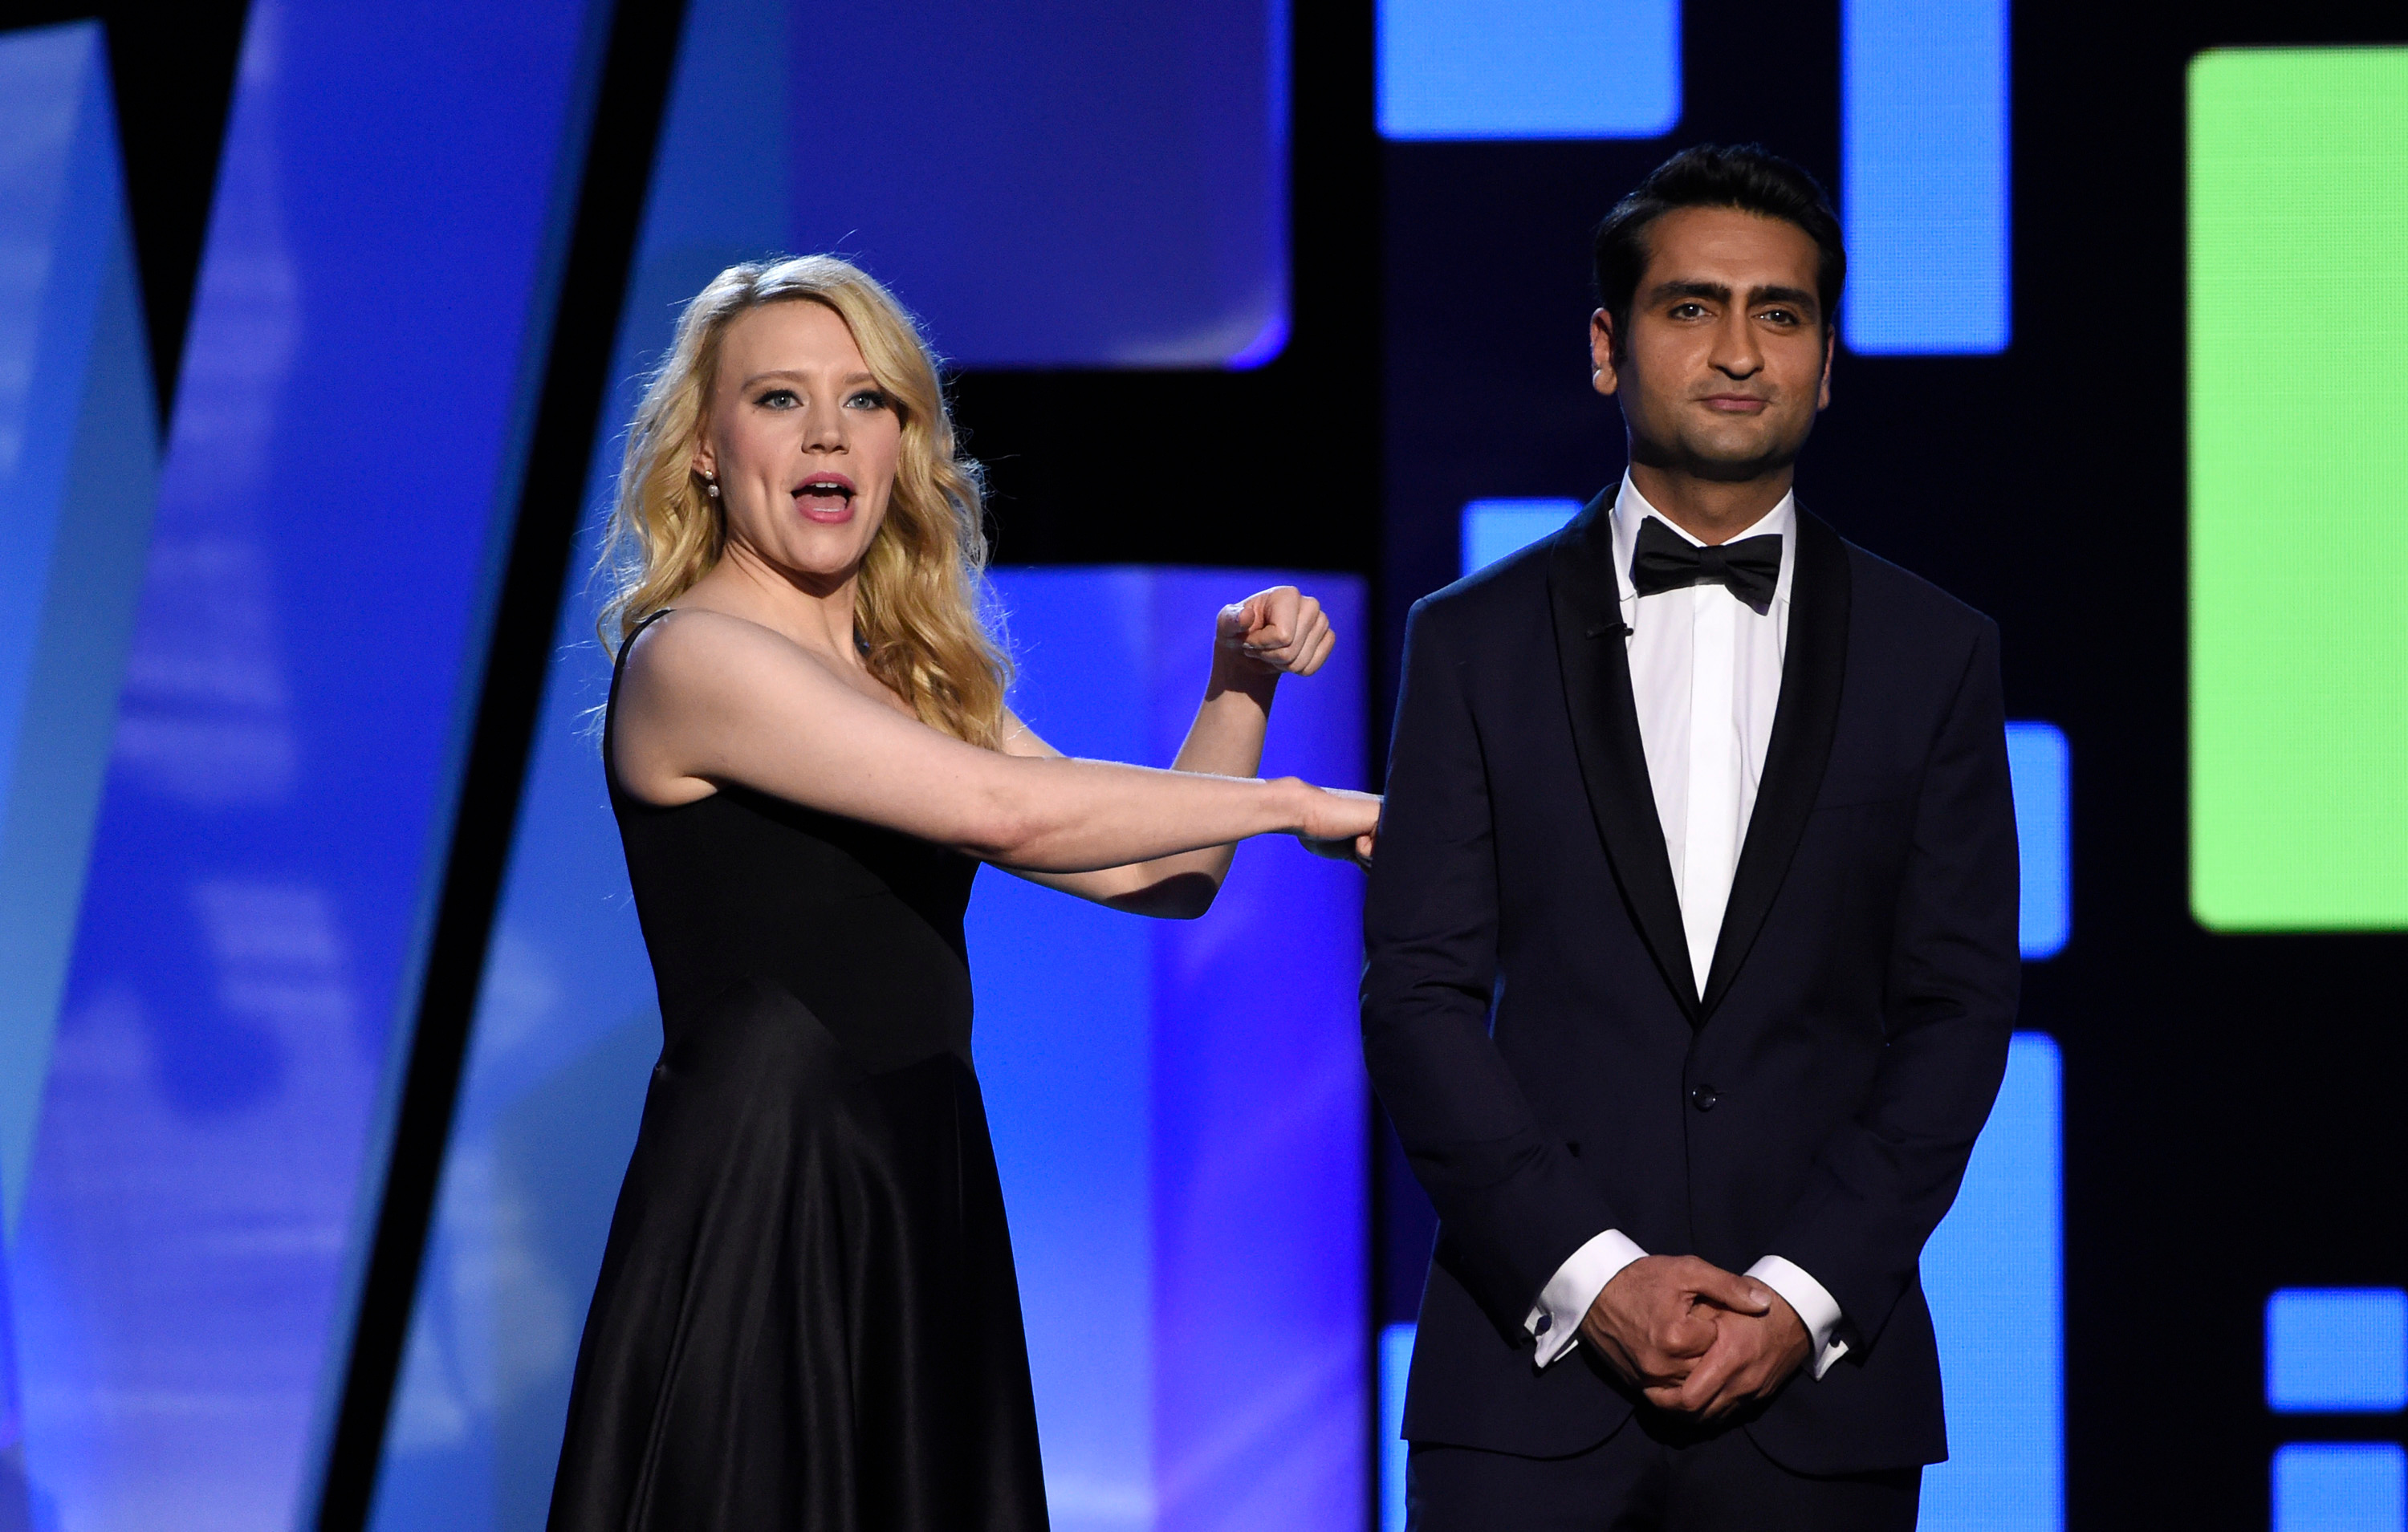 Hosts Kate McKinnon, left, and Kumail Nanjiani speak at the Film Independent Spirit Awards, in Santa Monica, Calif2016 Film Independent Spirit Awards - Show, Santa Monica, USA - 27 Feb 2016